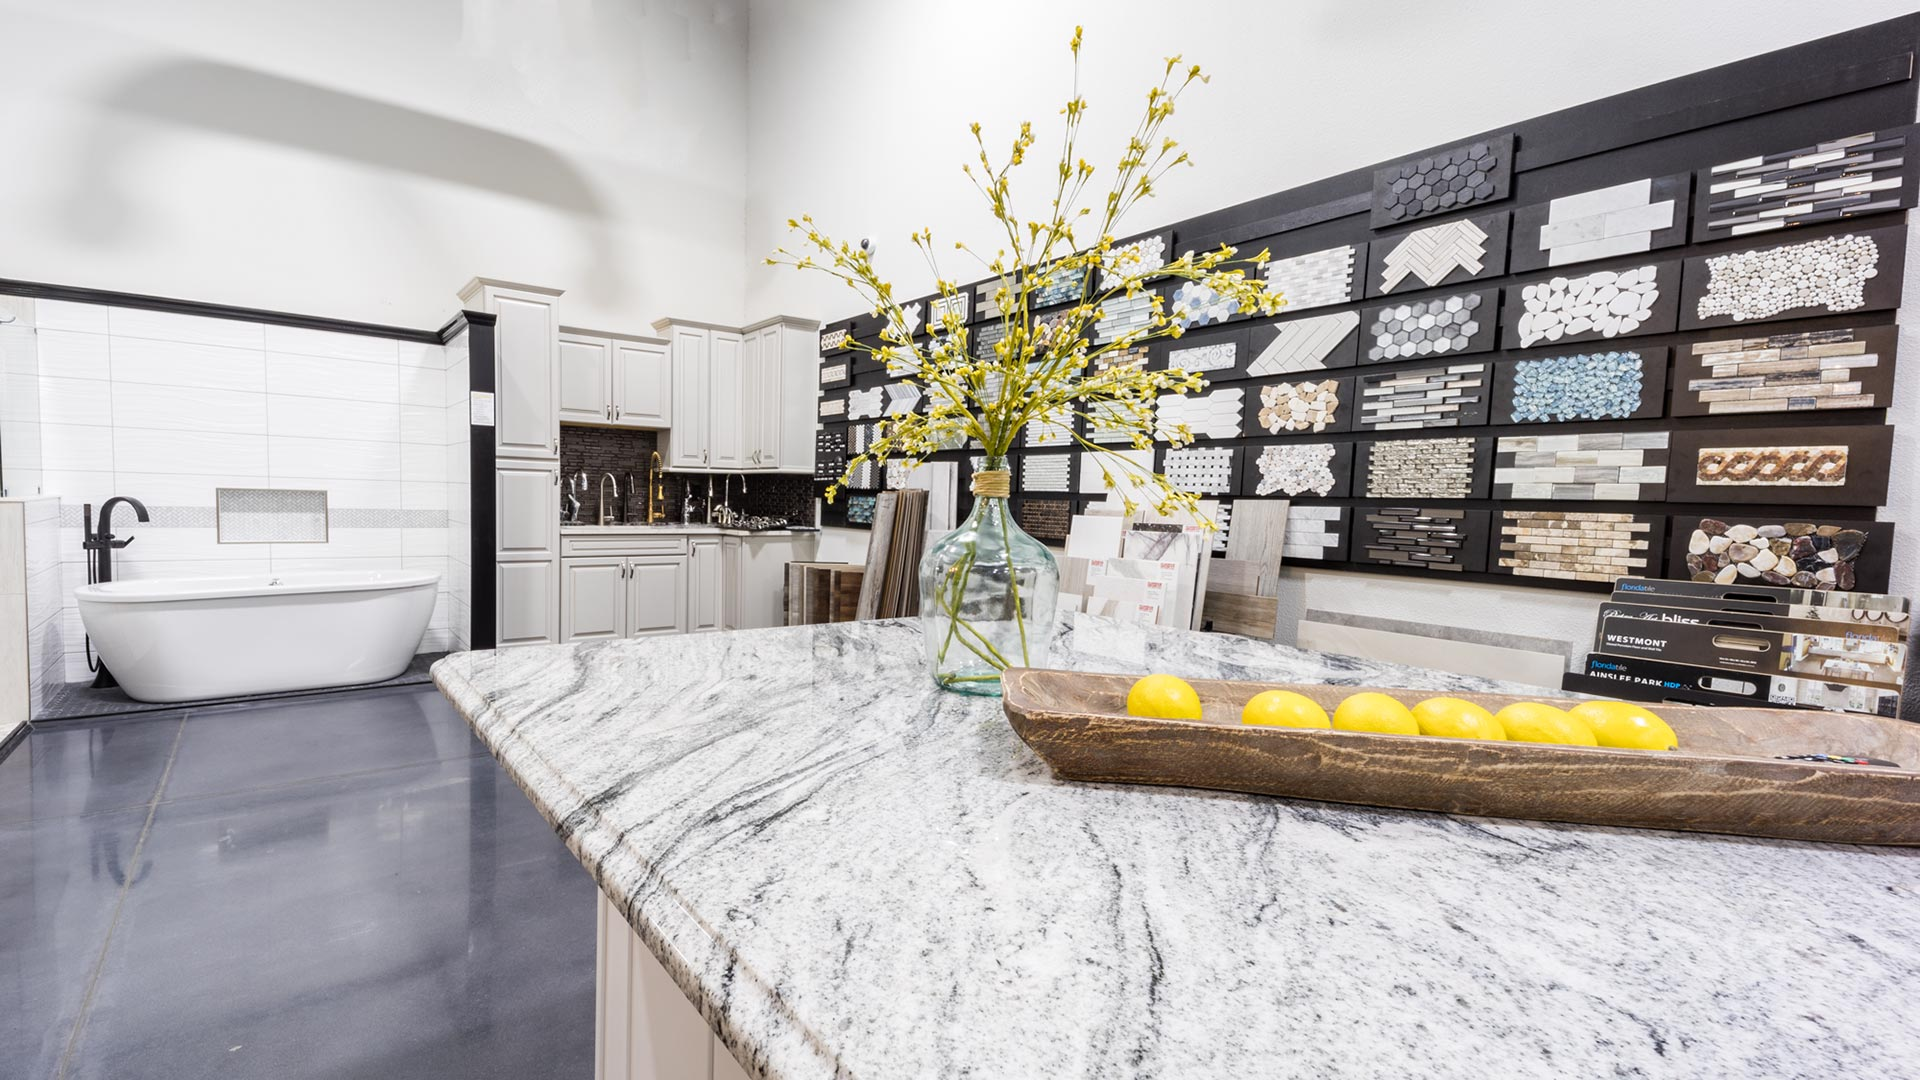 Home Improvement Stores Can't Match These Remodeling Showroom Perks